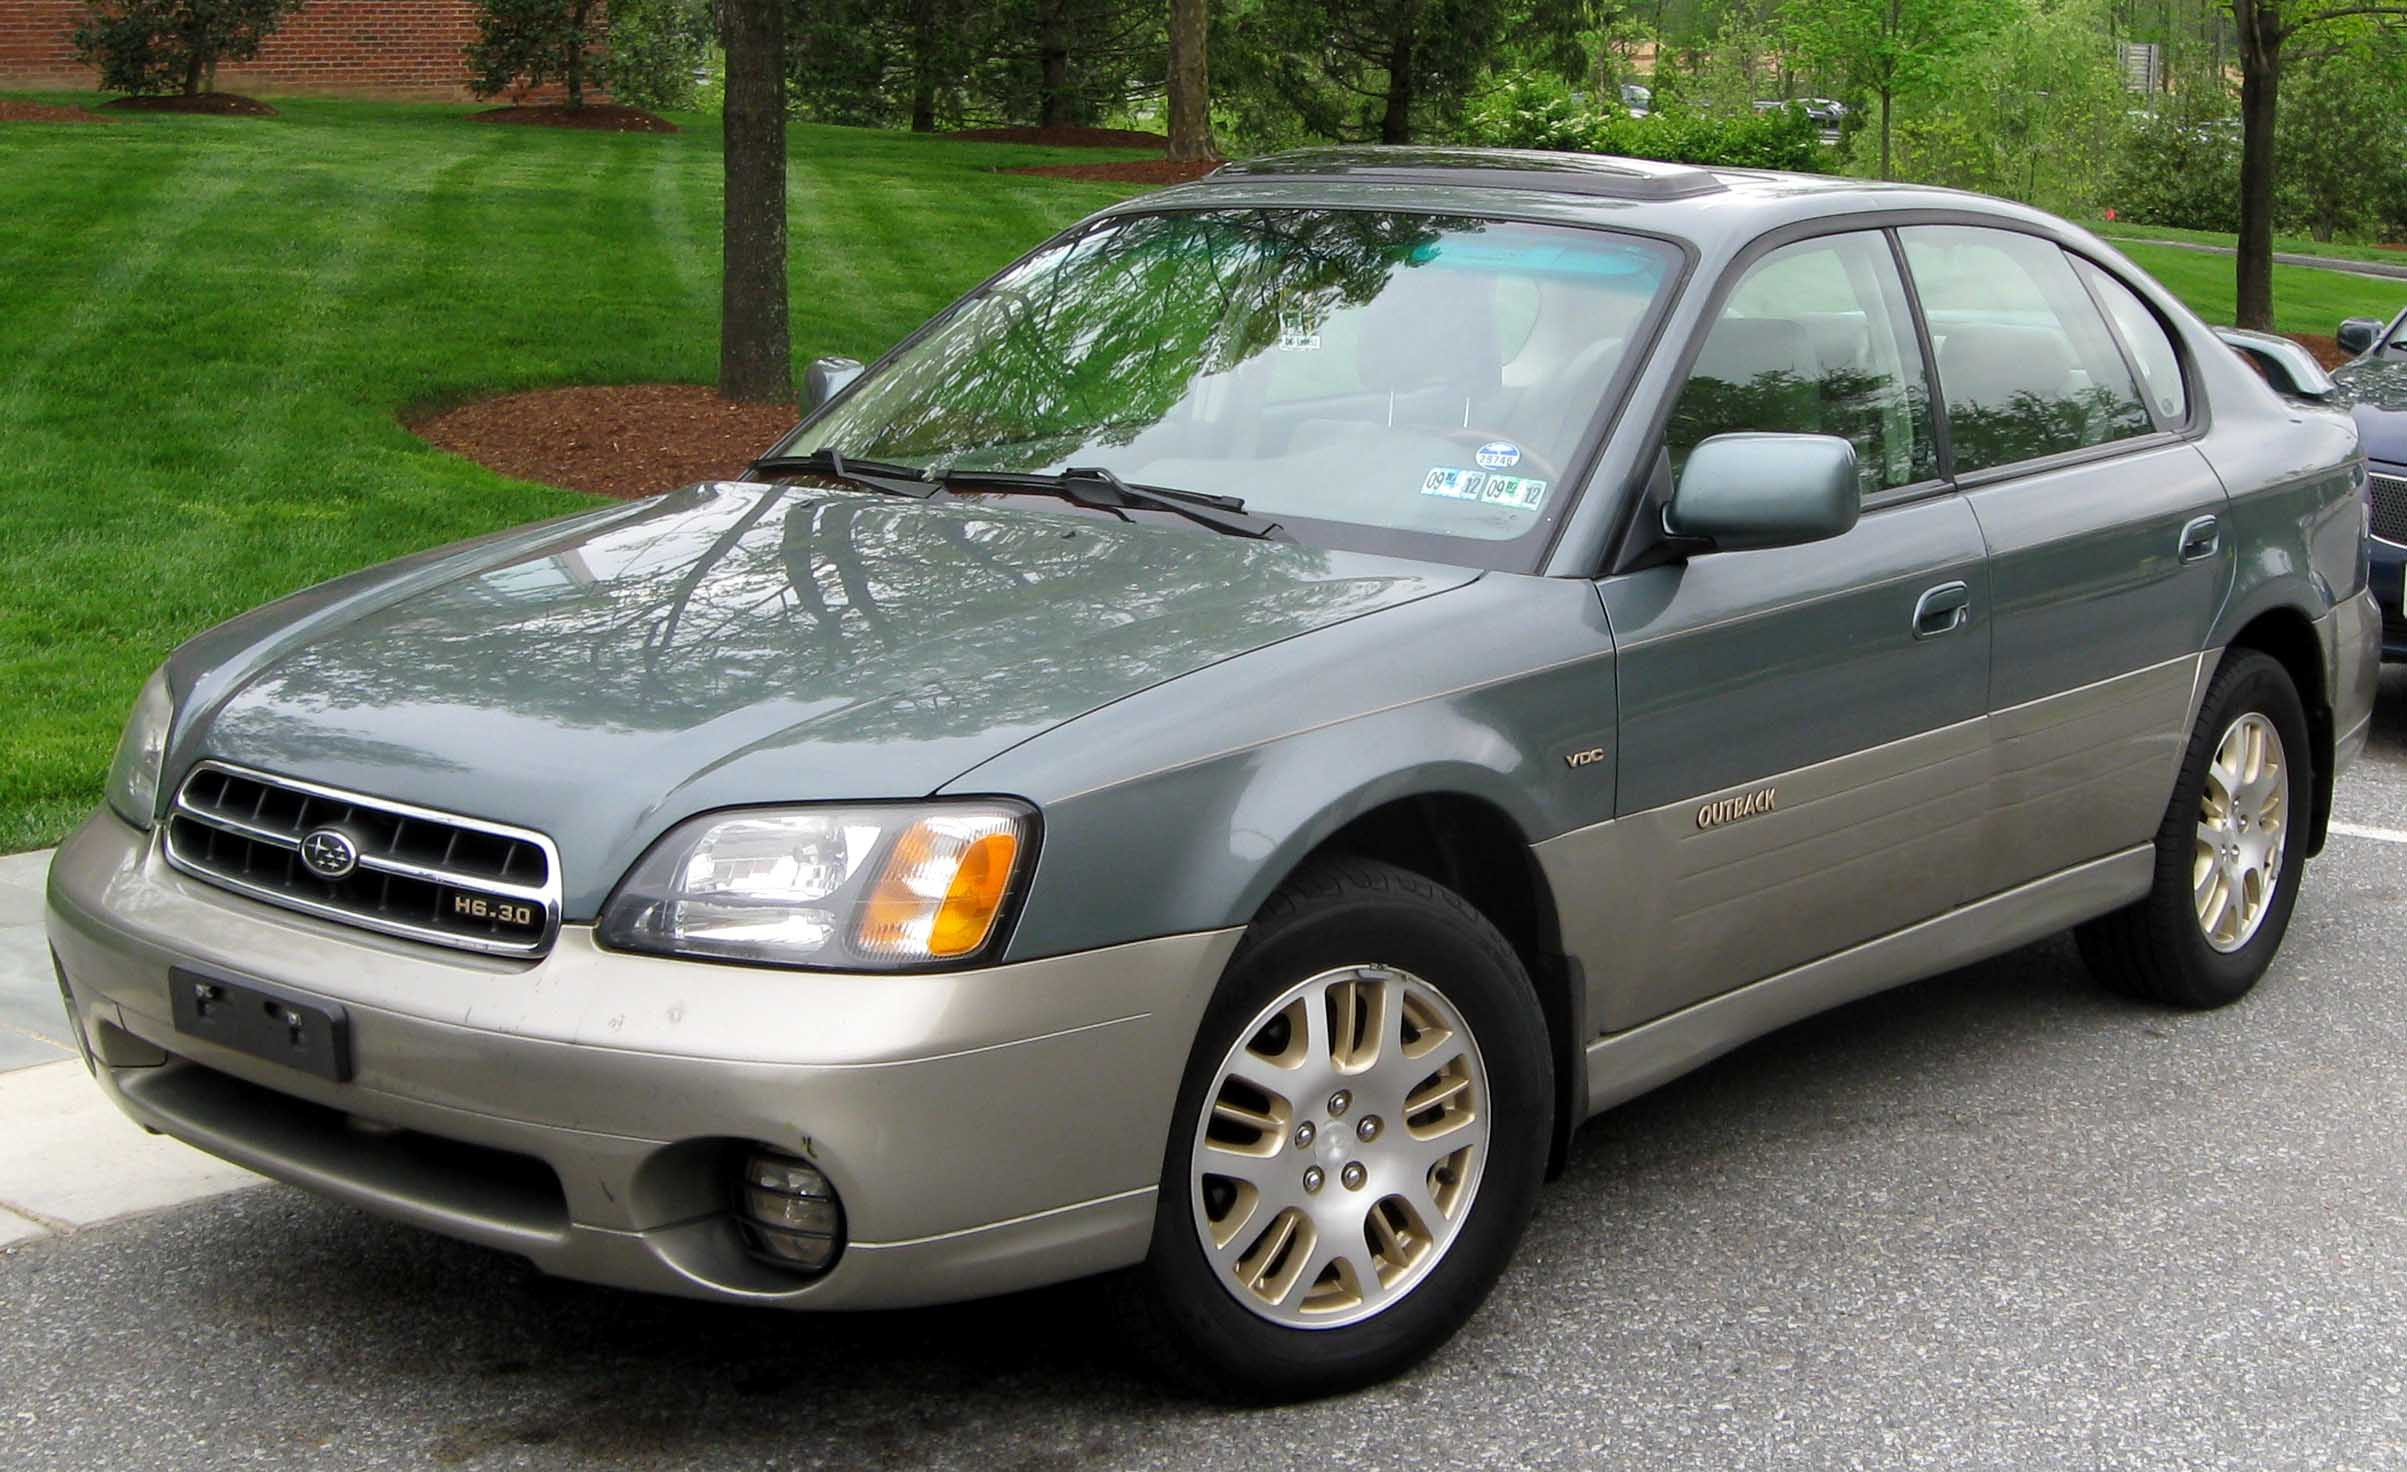 Subaru Legacy 3 6 R >> Are there any Subaru fans that can shed some light as to what I just saw : cars